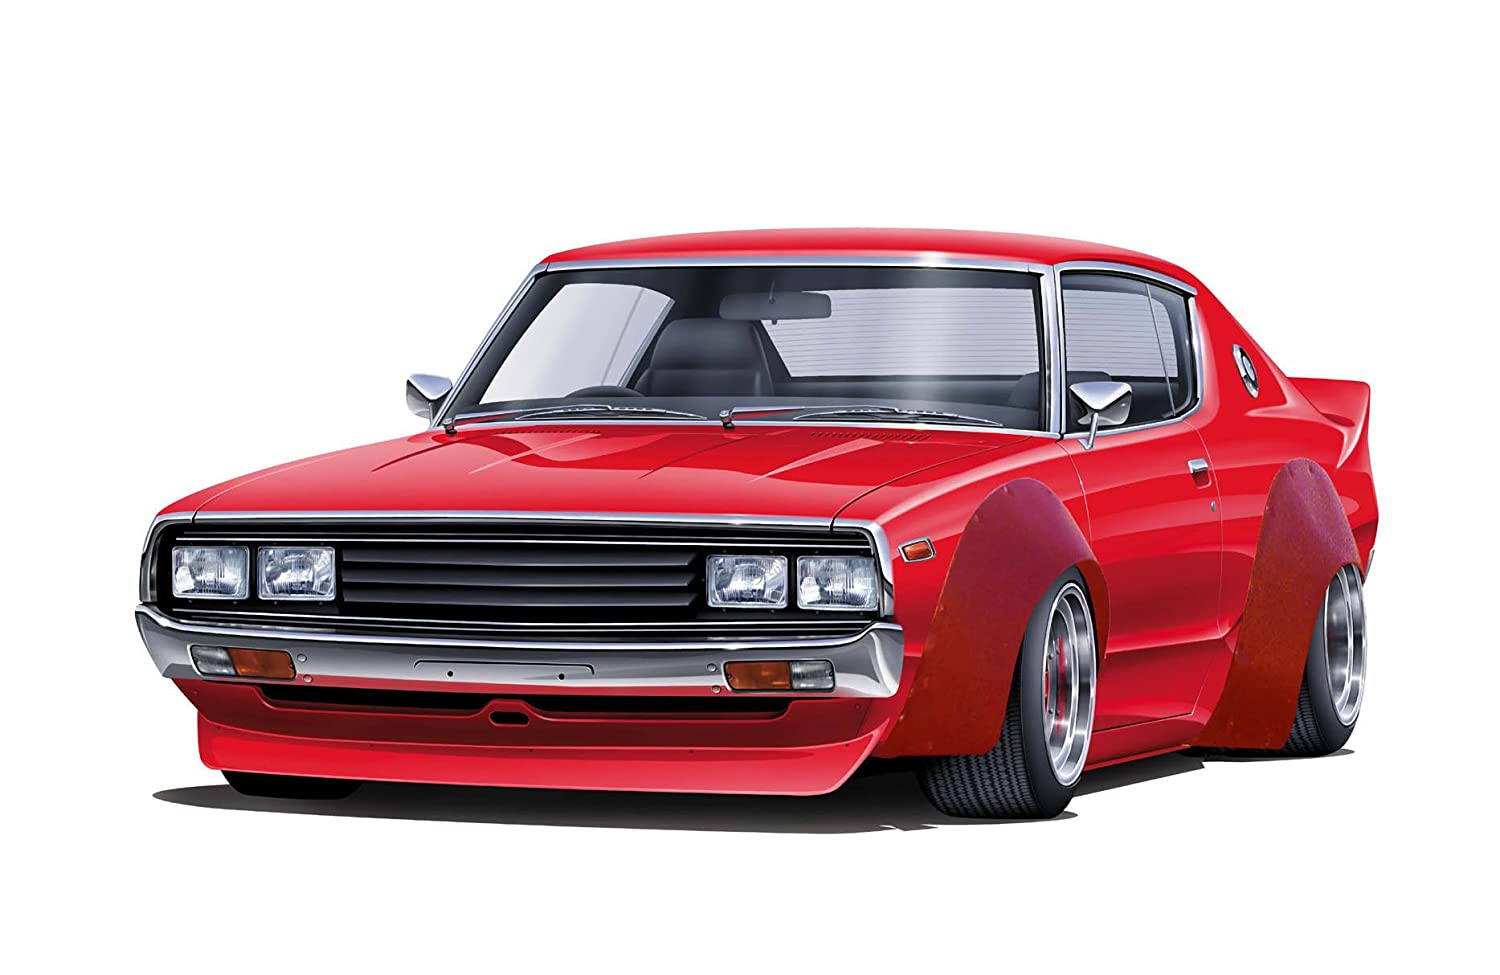 1/24 Mehr Grand Champion No.SP Kenmeri 2Dr Sonder